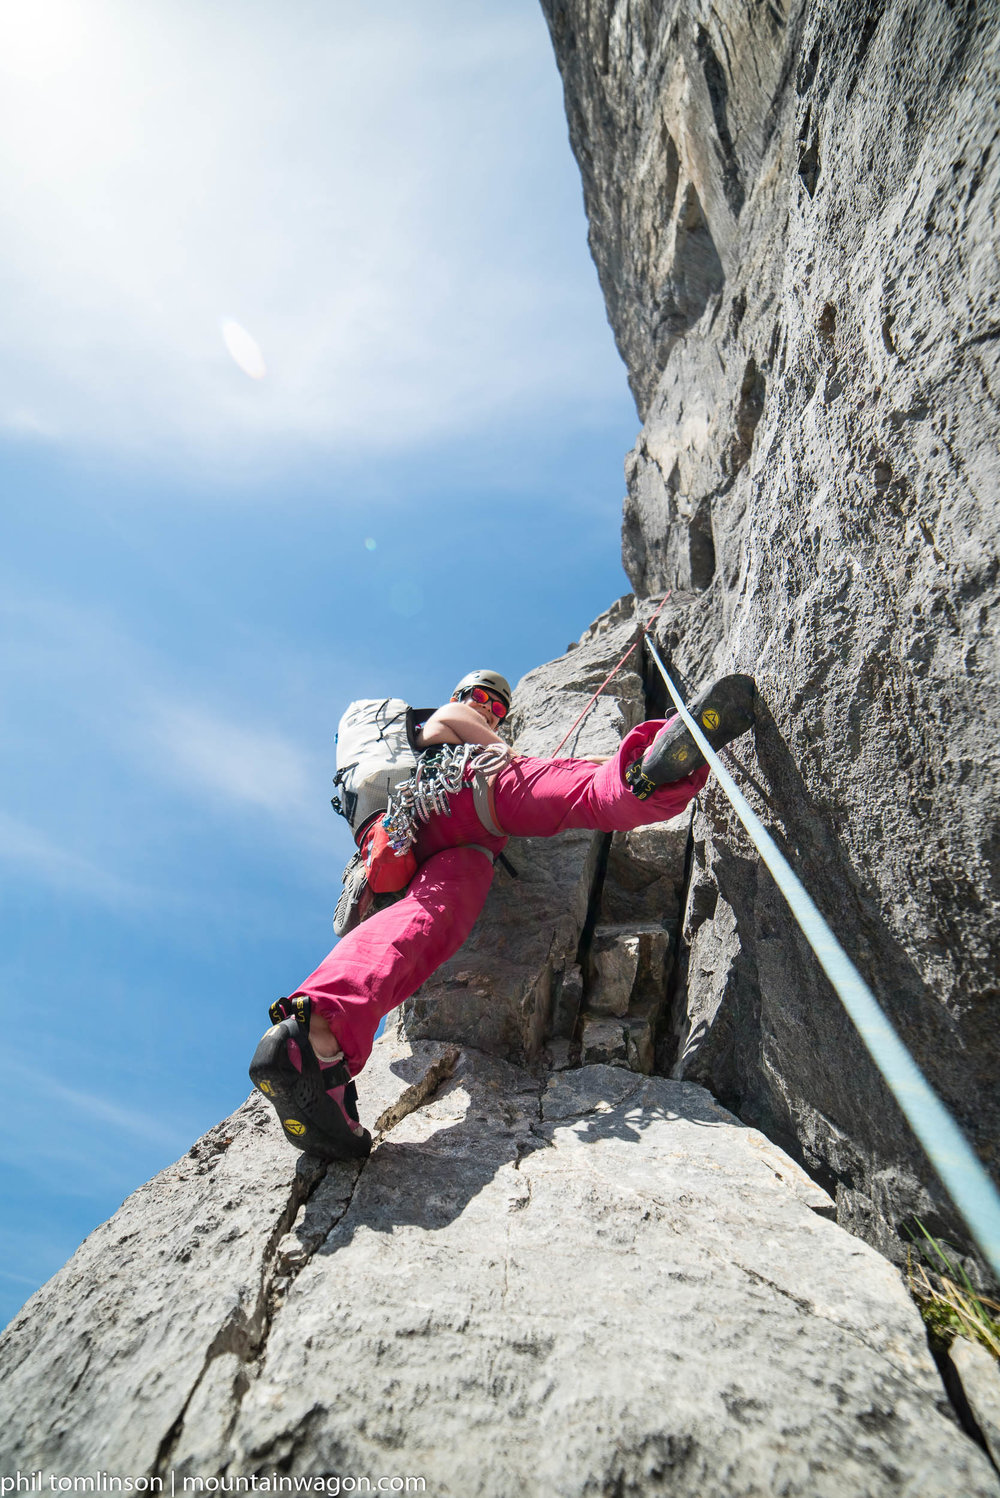 Marie-Eve climbed just above me, providing continuous encouragement and advice